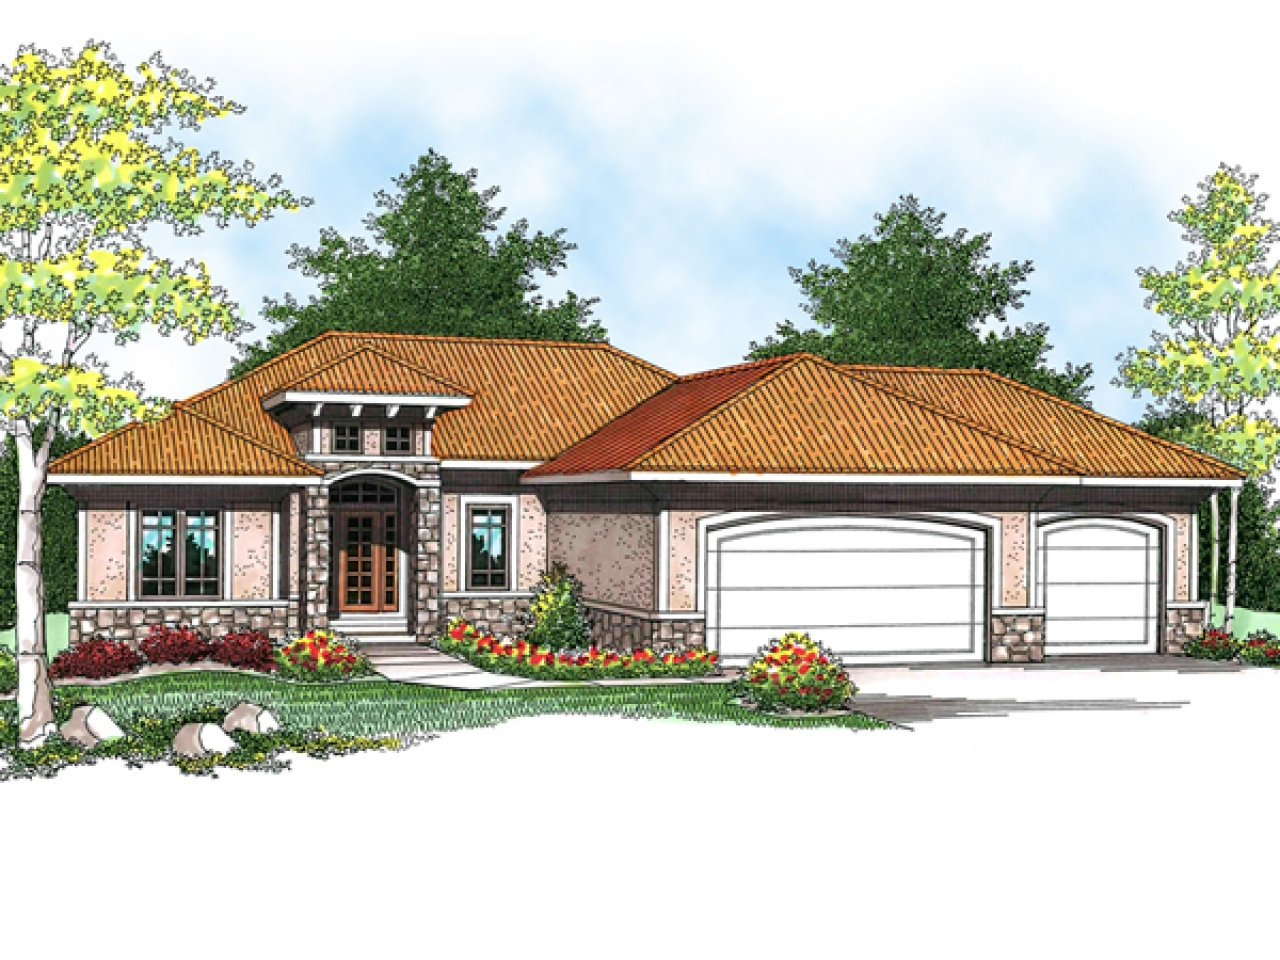 Victorian house plans stucco house plans and designs for Stucco house plans